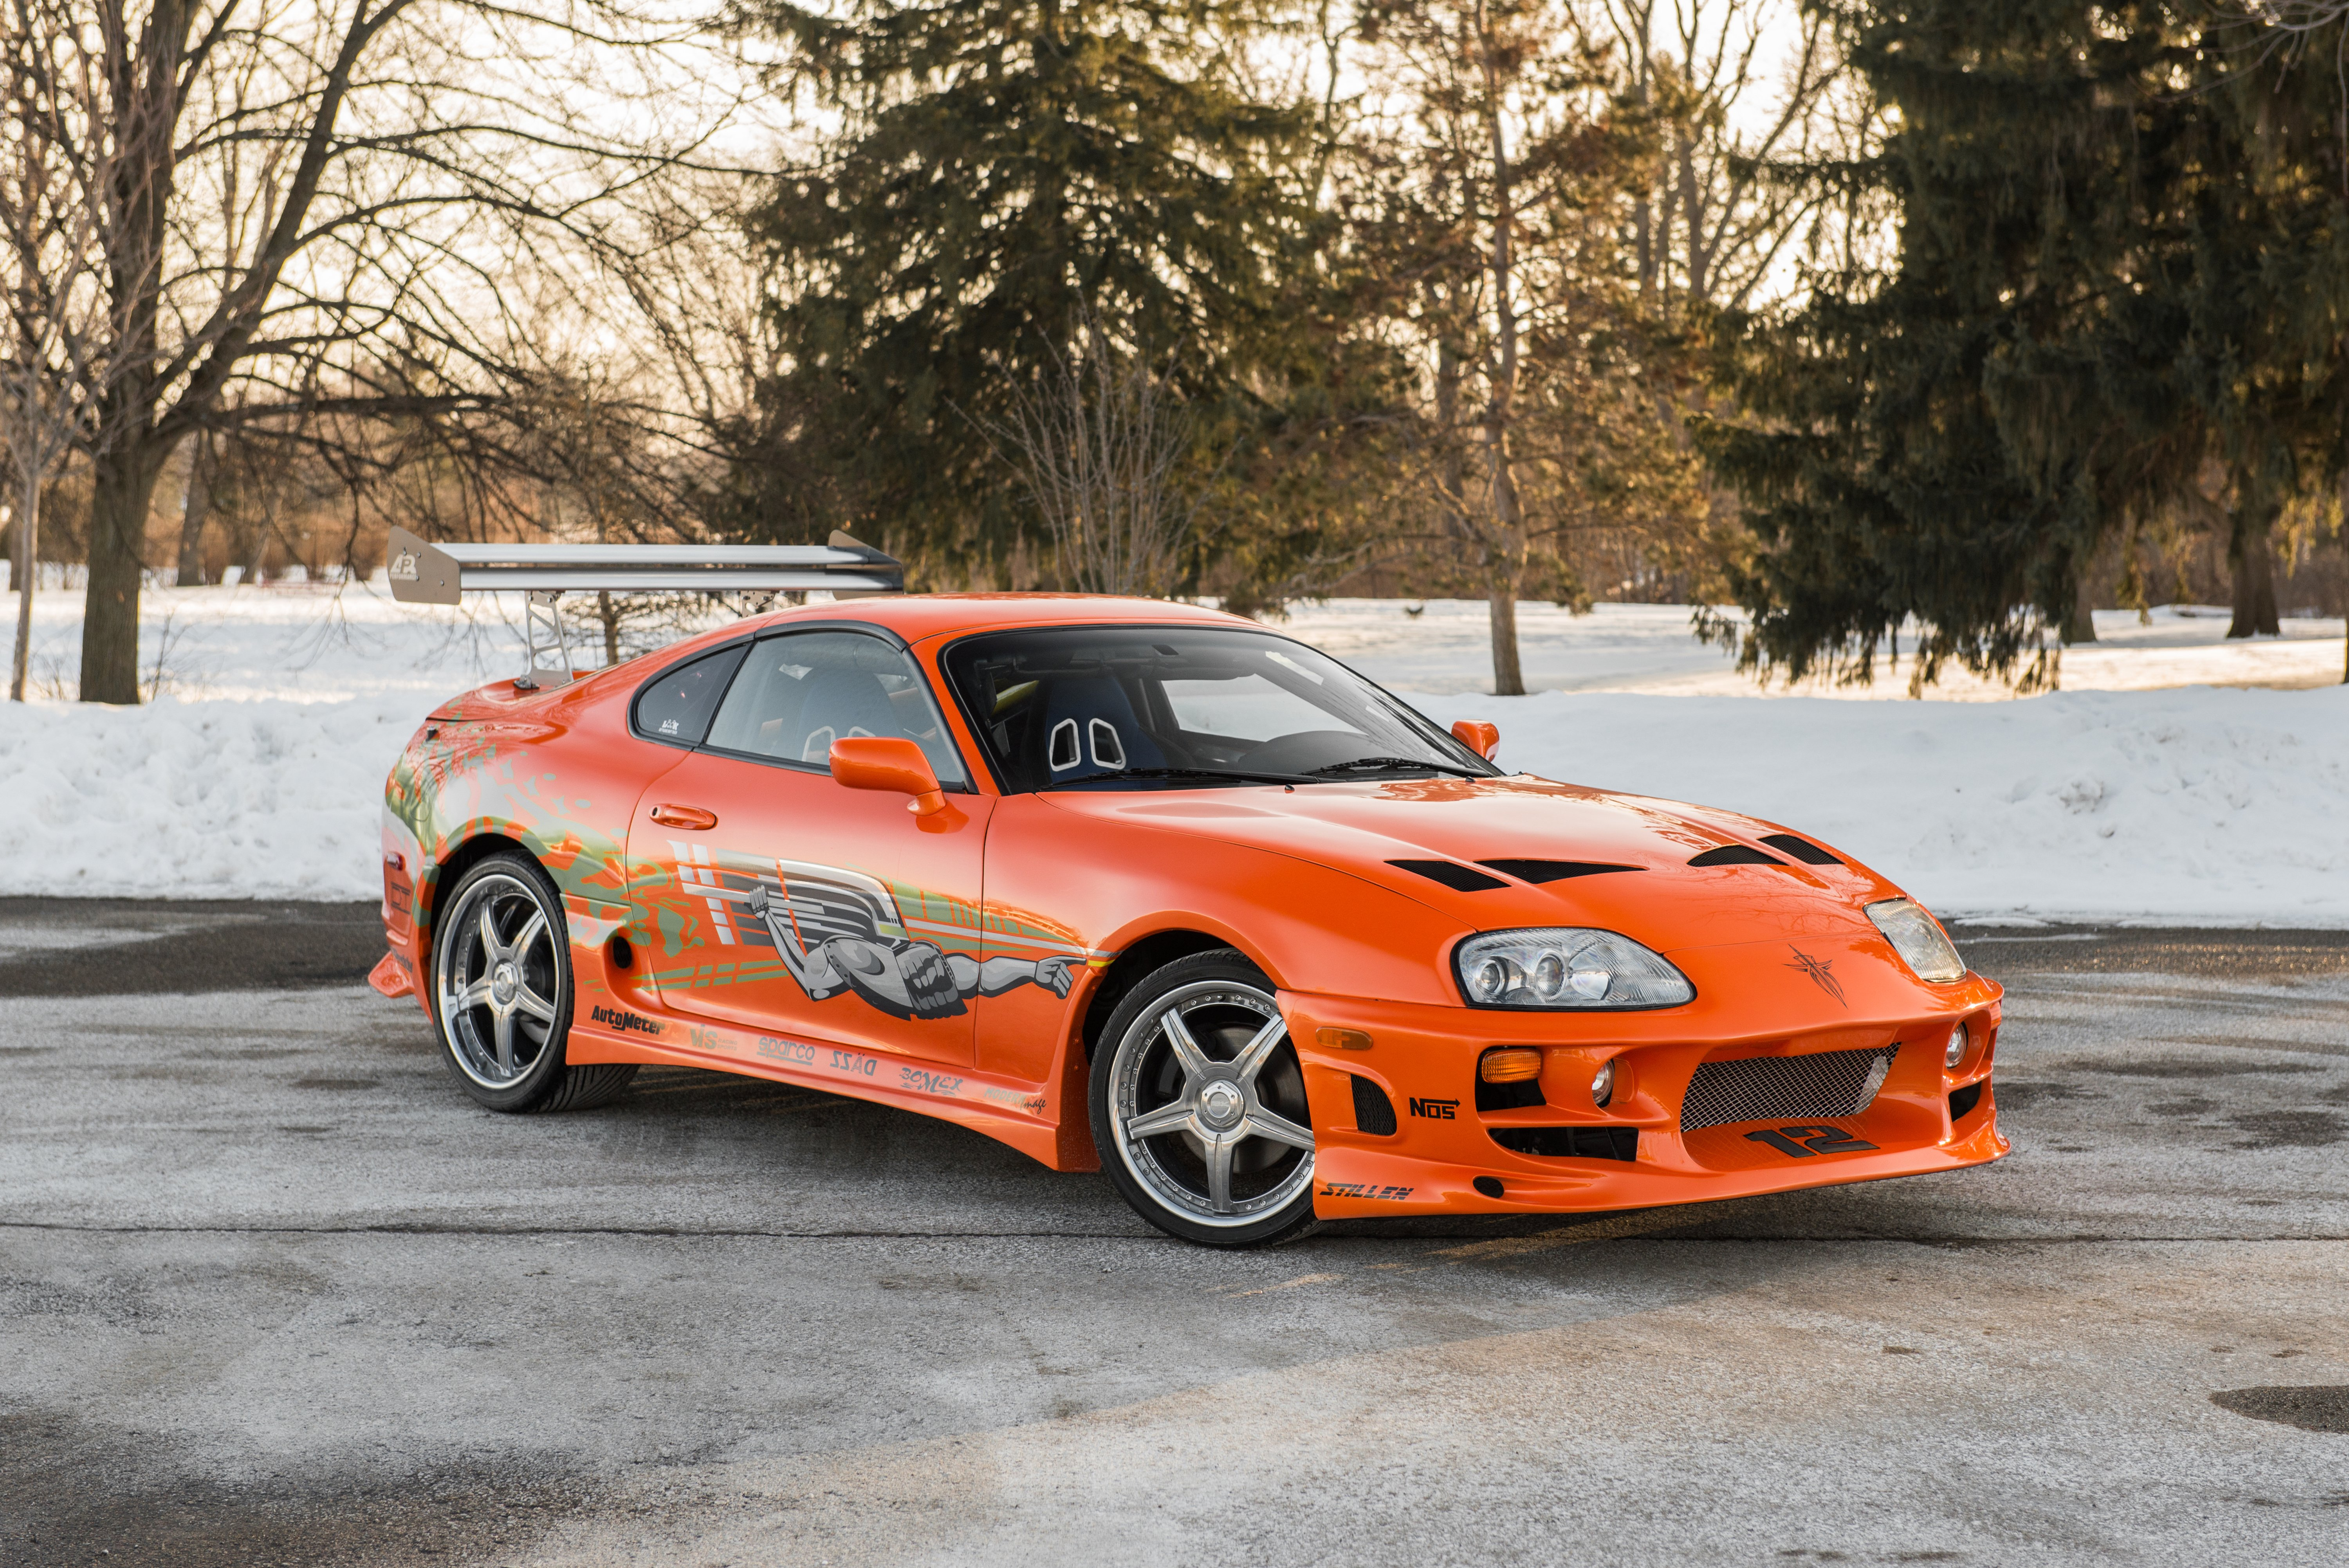 Toyota Supra The Fast and the Furious - 3788.7KB